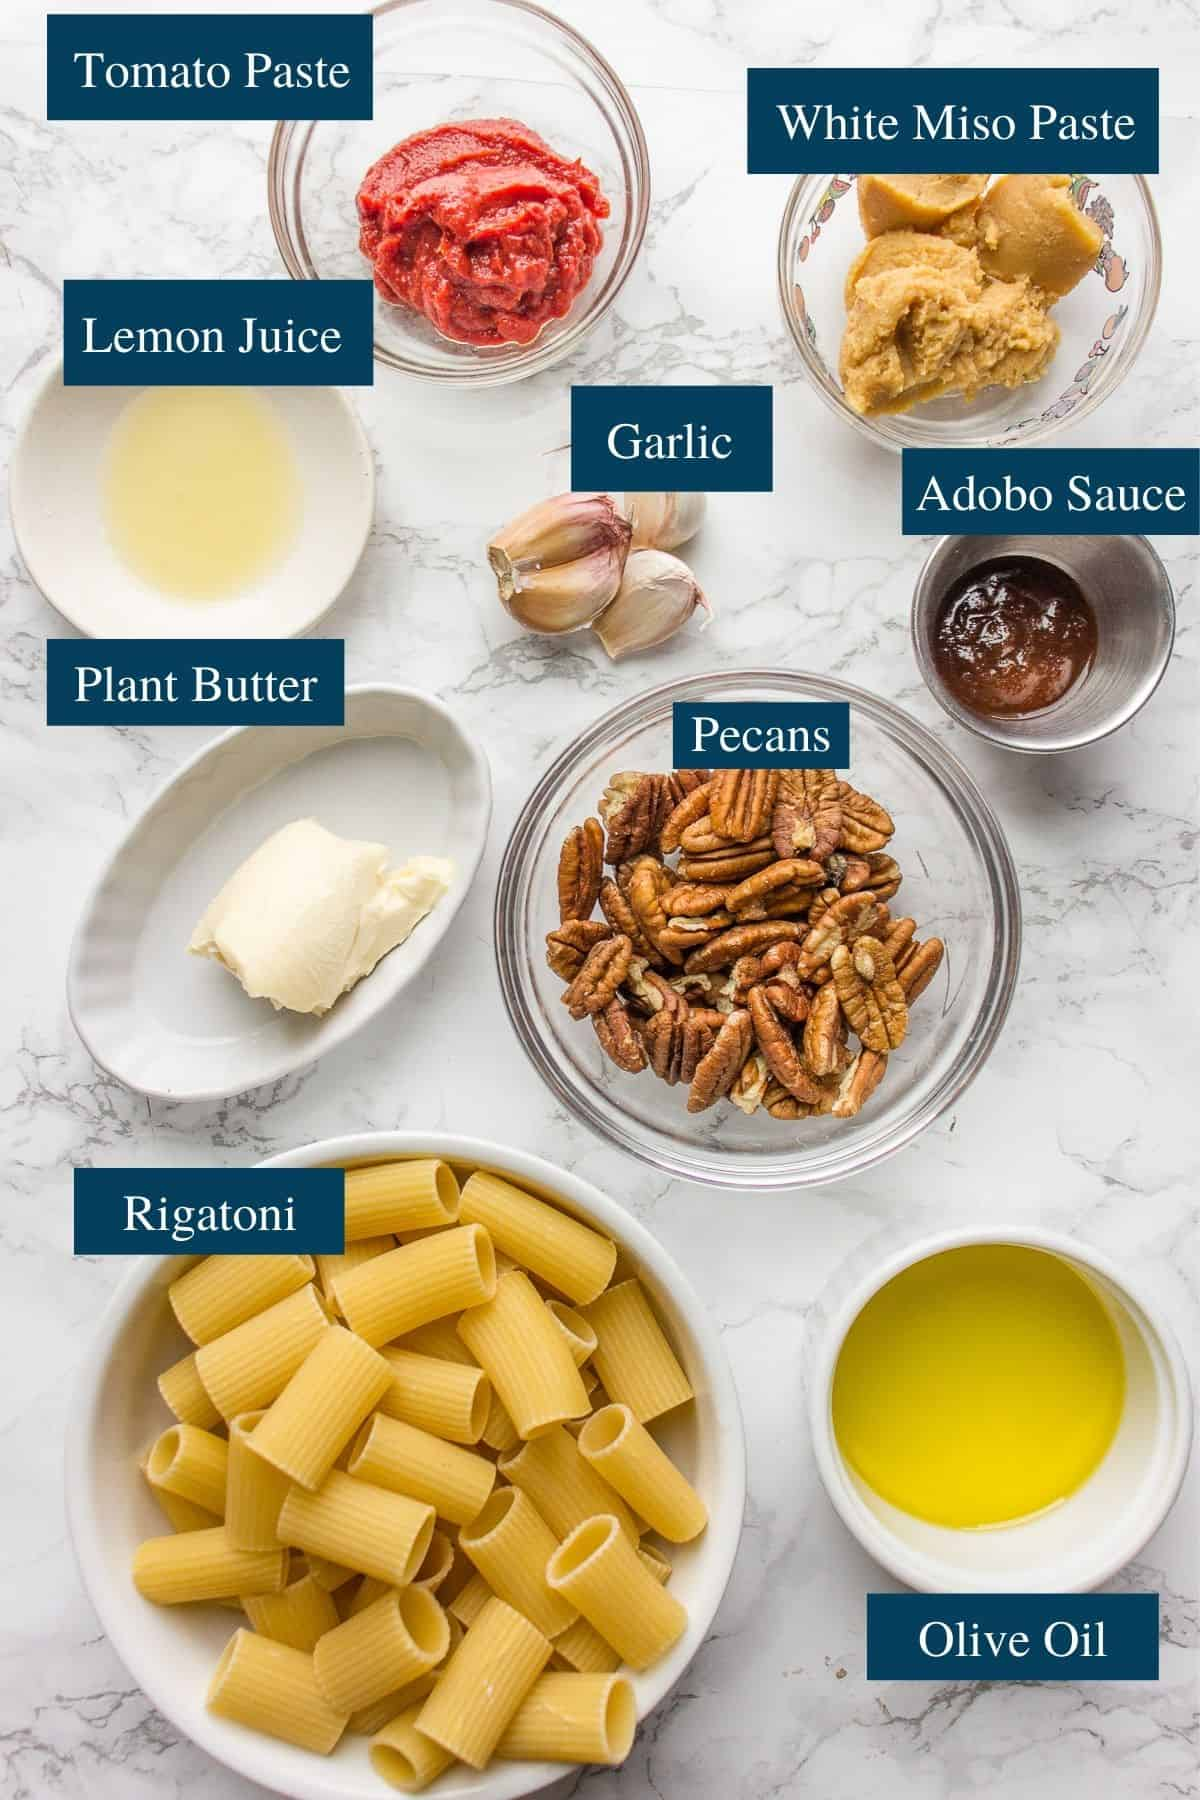 Ingredients overview for Miso pasta recipe